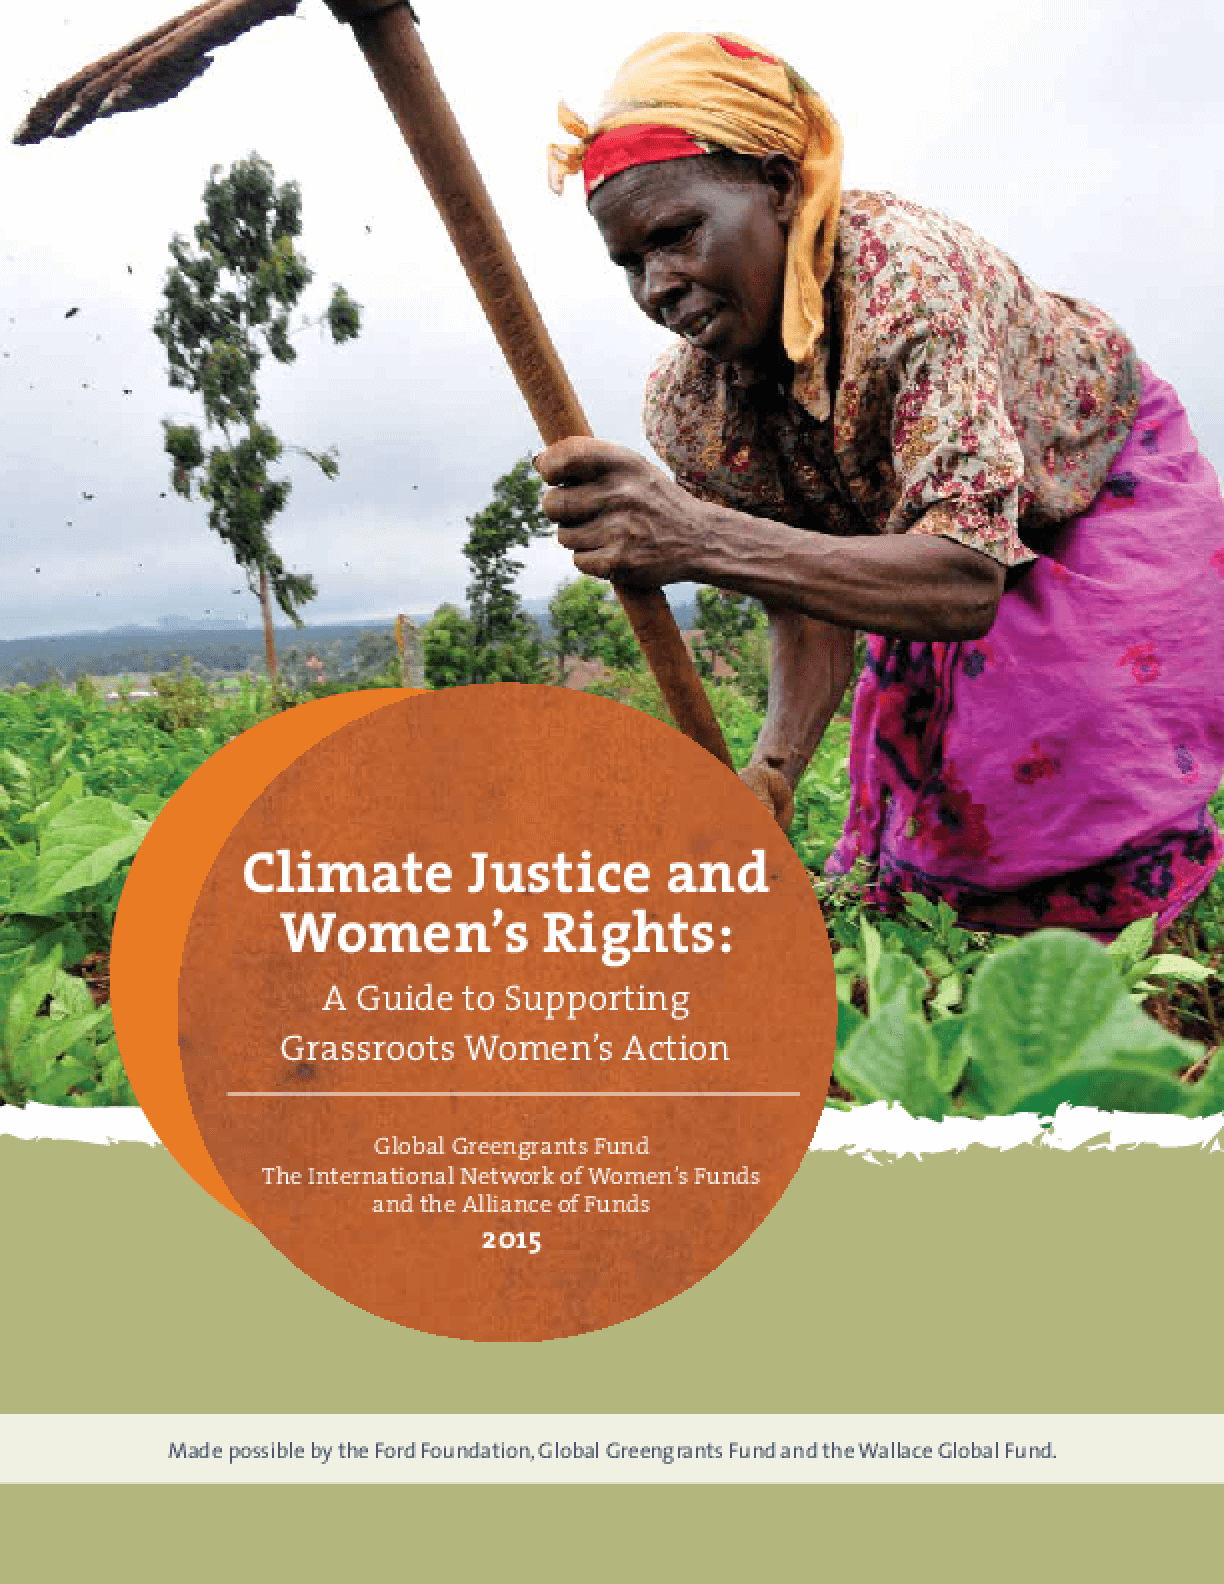 Climate Justice and Women's Rights: A Guide to Supporting Grassroots Women's Action